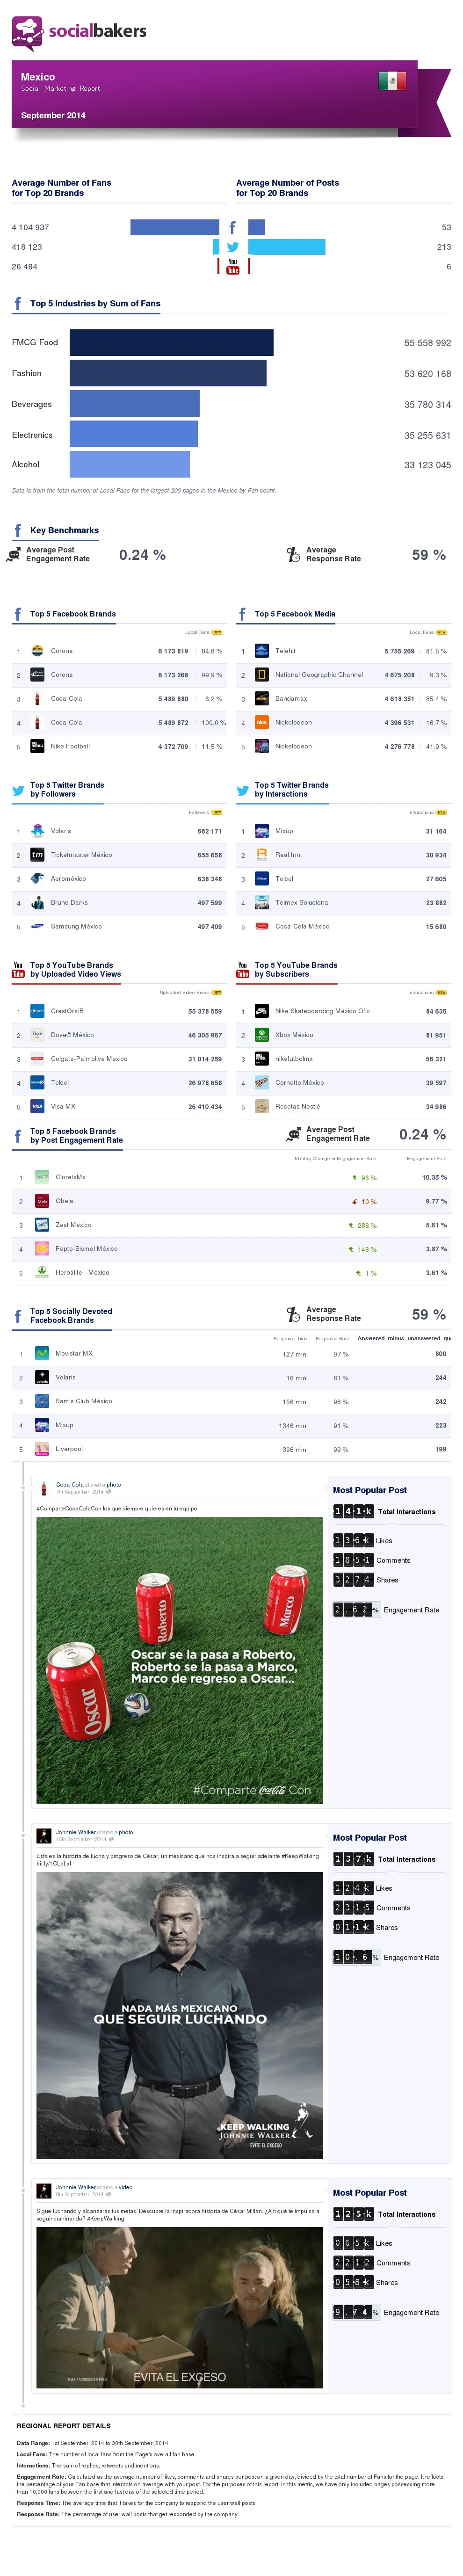 september-2014-social-marketing-report-mexico-regional-thumbnail